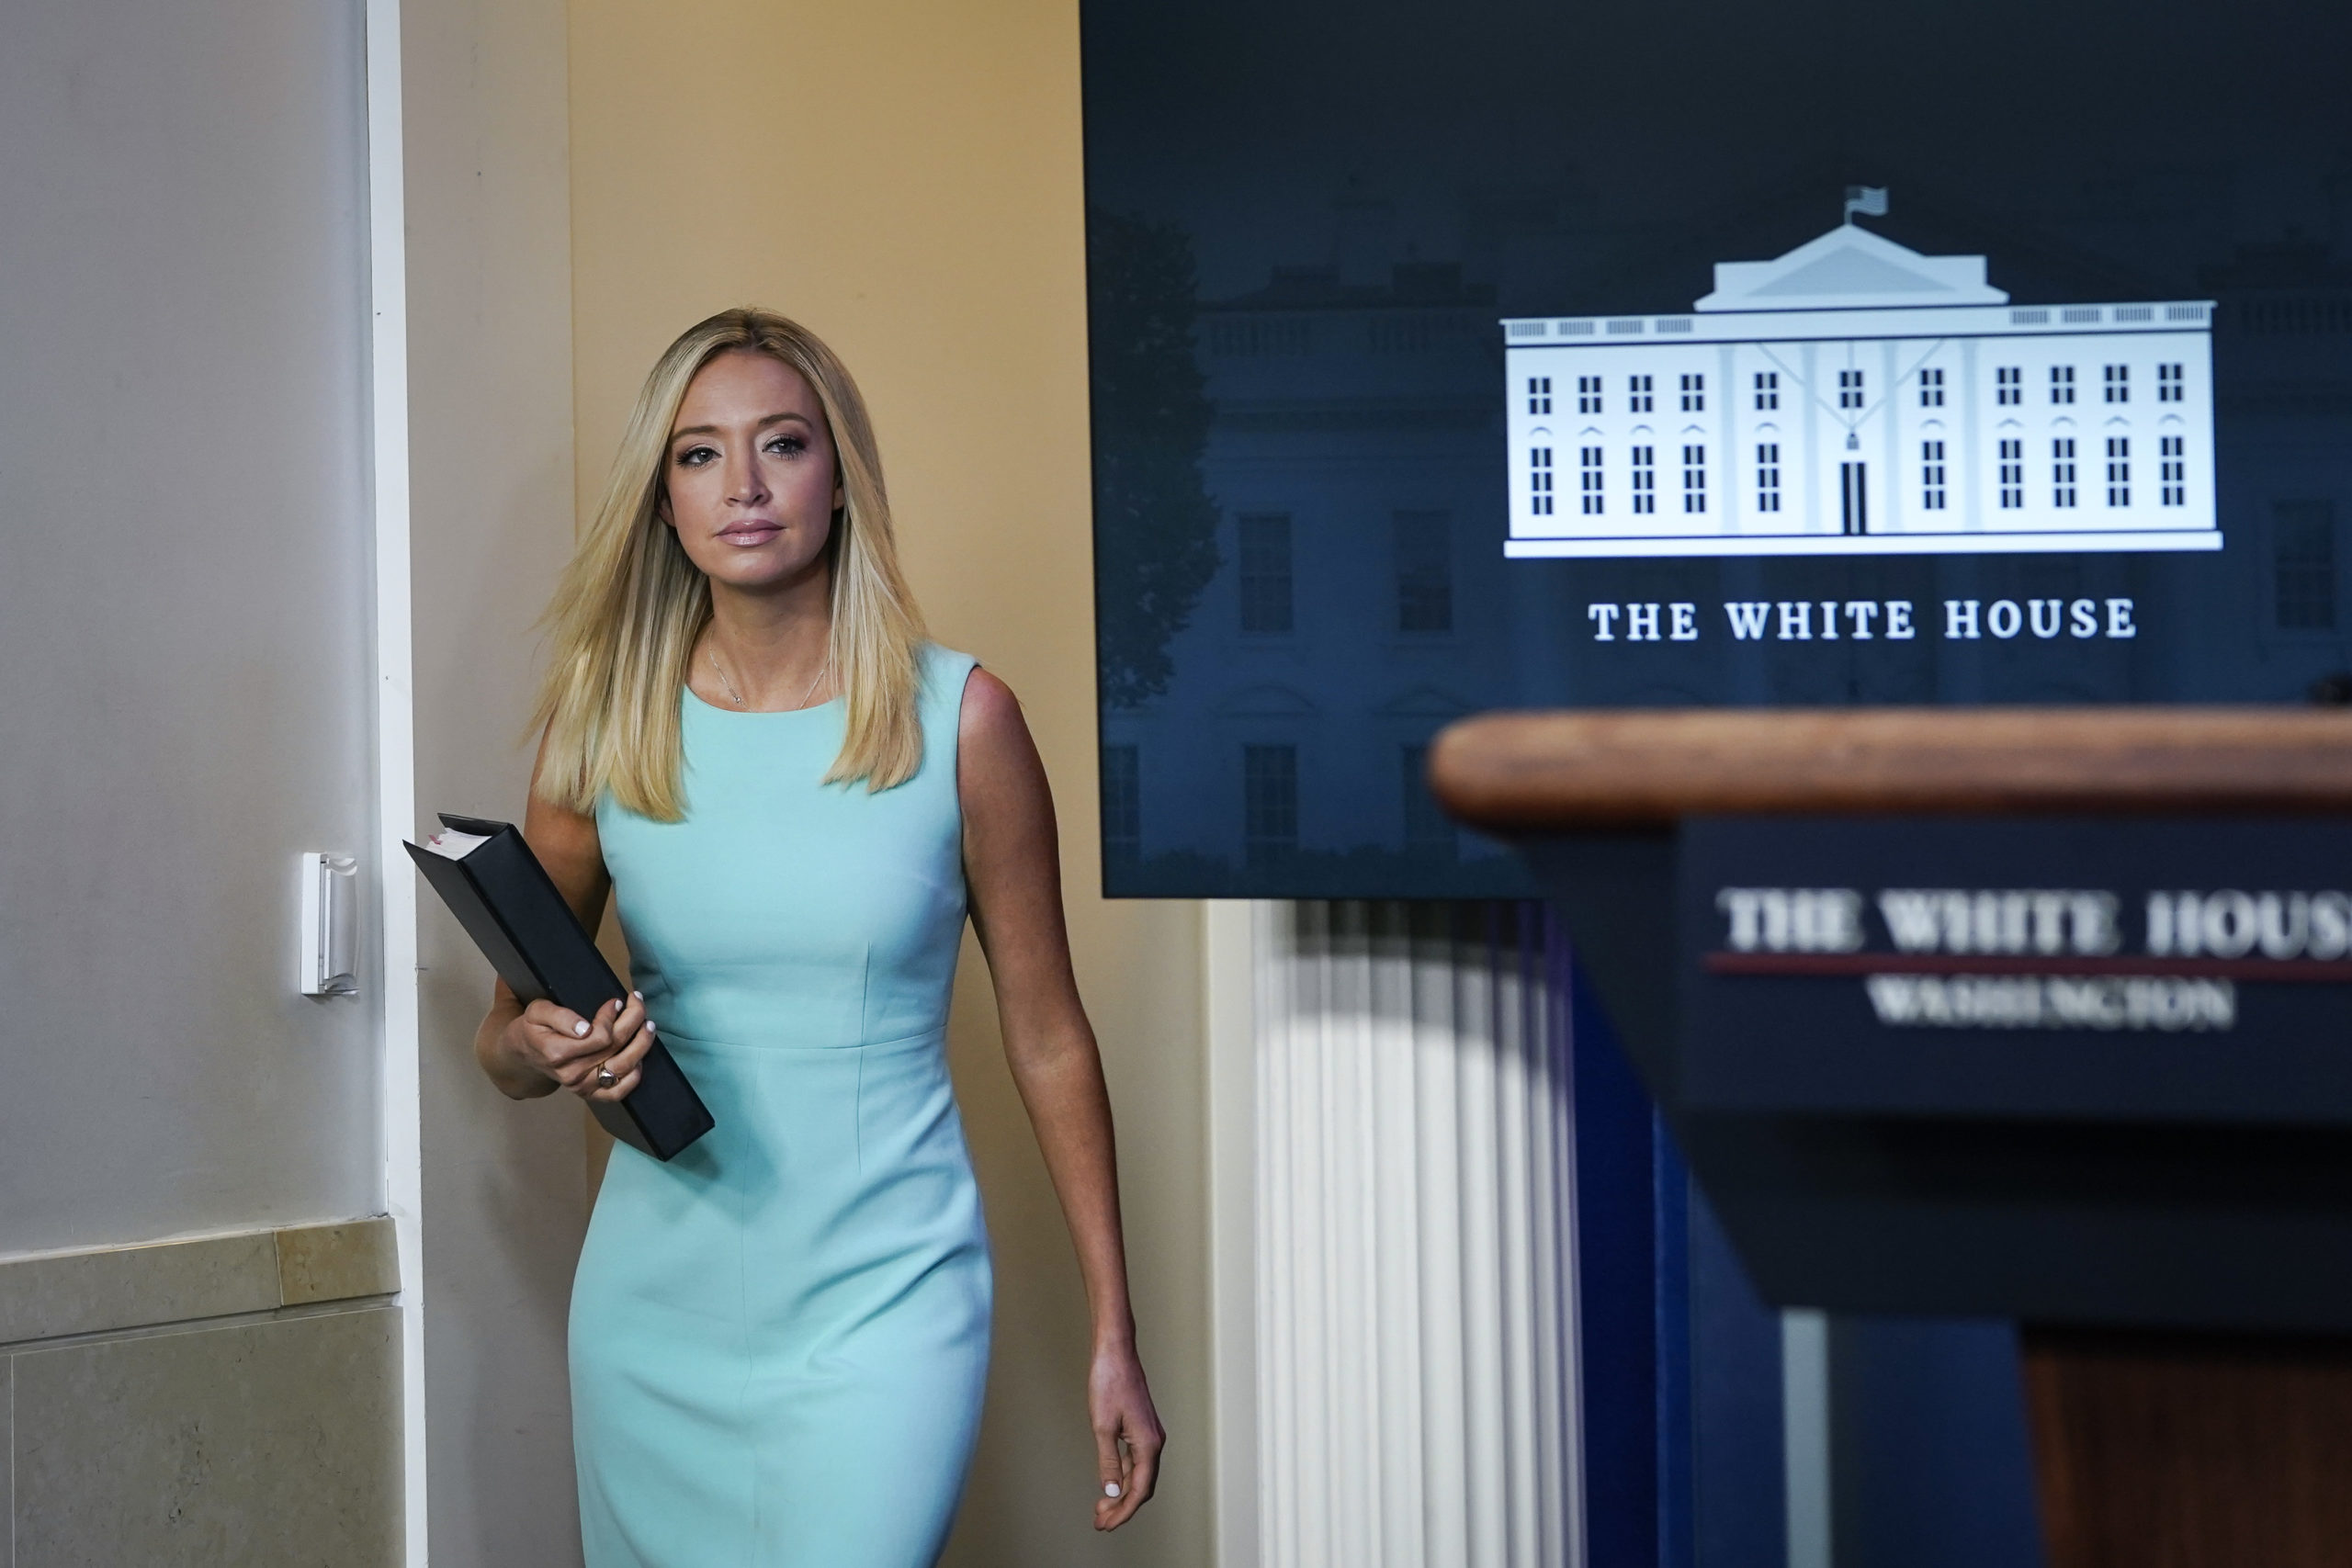 WASHINGTON, DC - SEPTEMBER 04: White House Press Secretary Kayleigh McEnany arrives for a press briefing at the White House on September 4, 2020 in Washington, DC. Administration officials also discussed a U.S. led agreement between Serbia and Kosovo that attempts to normalize economic relations between the two countries. (Photo by Drew Angerer/Getty Images)